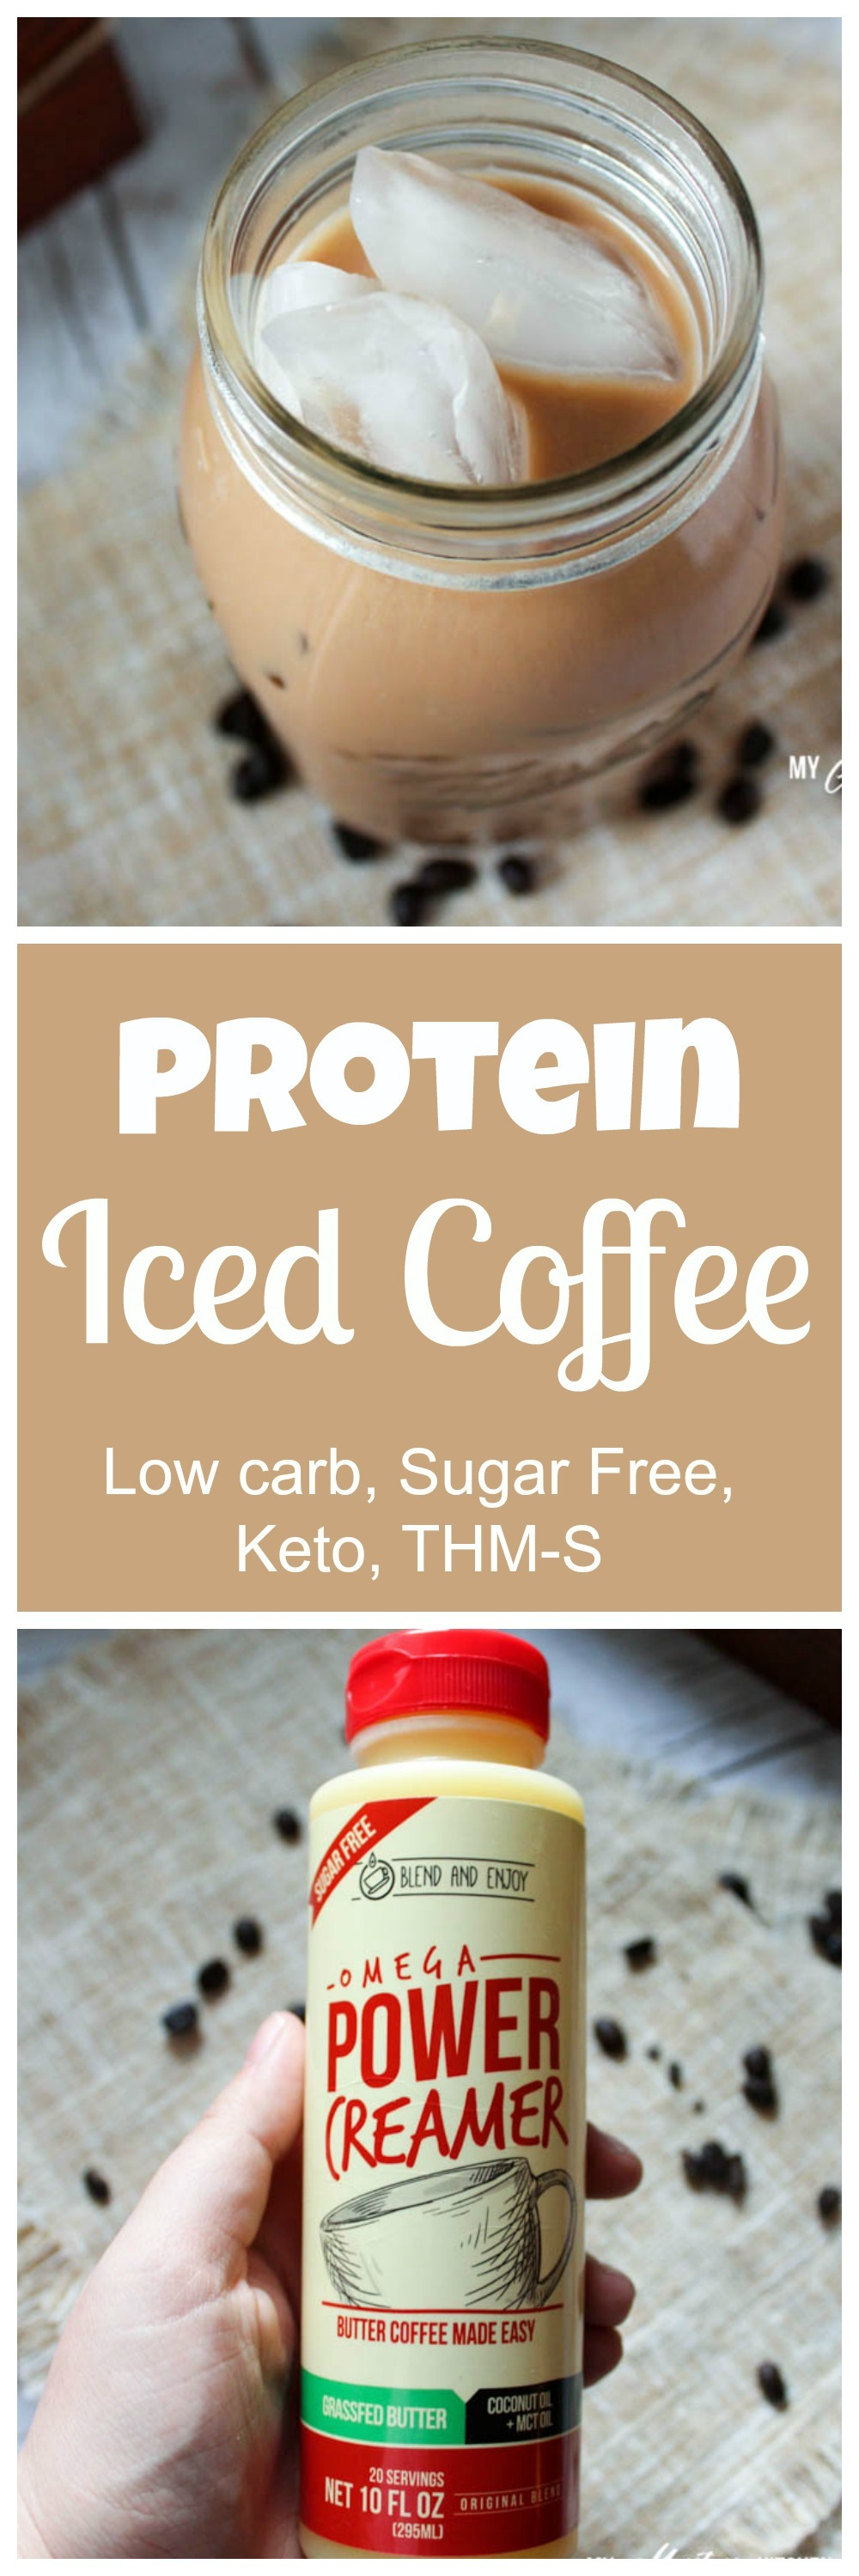 Protein Iced Coffee (Low Carb, Sugar Free, THM-S)